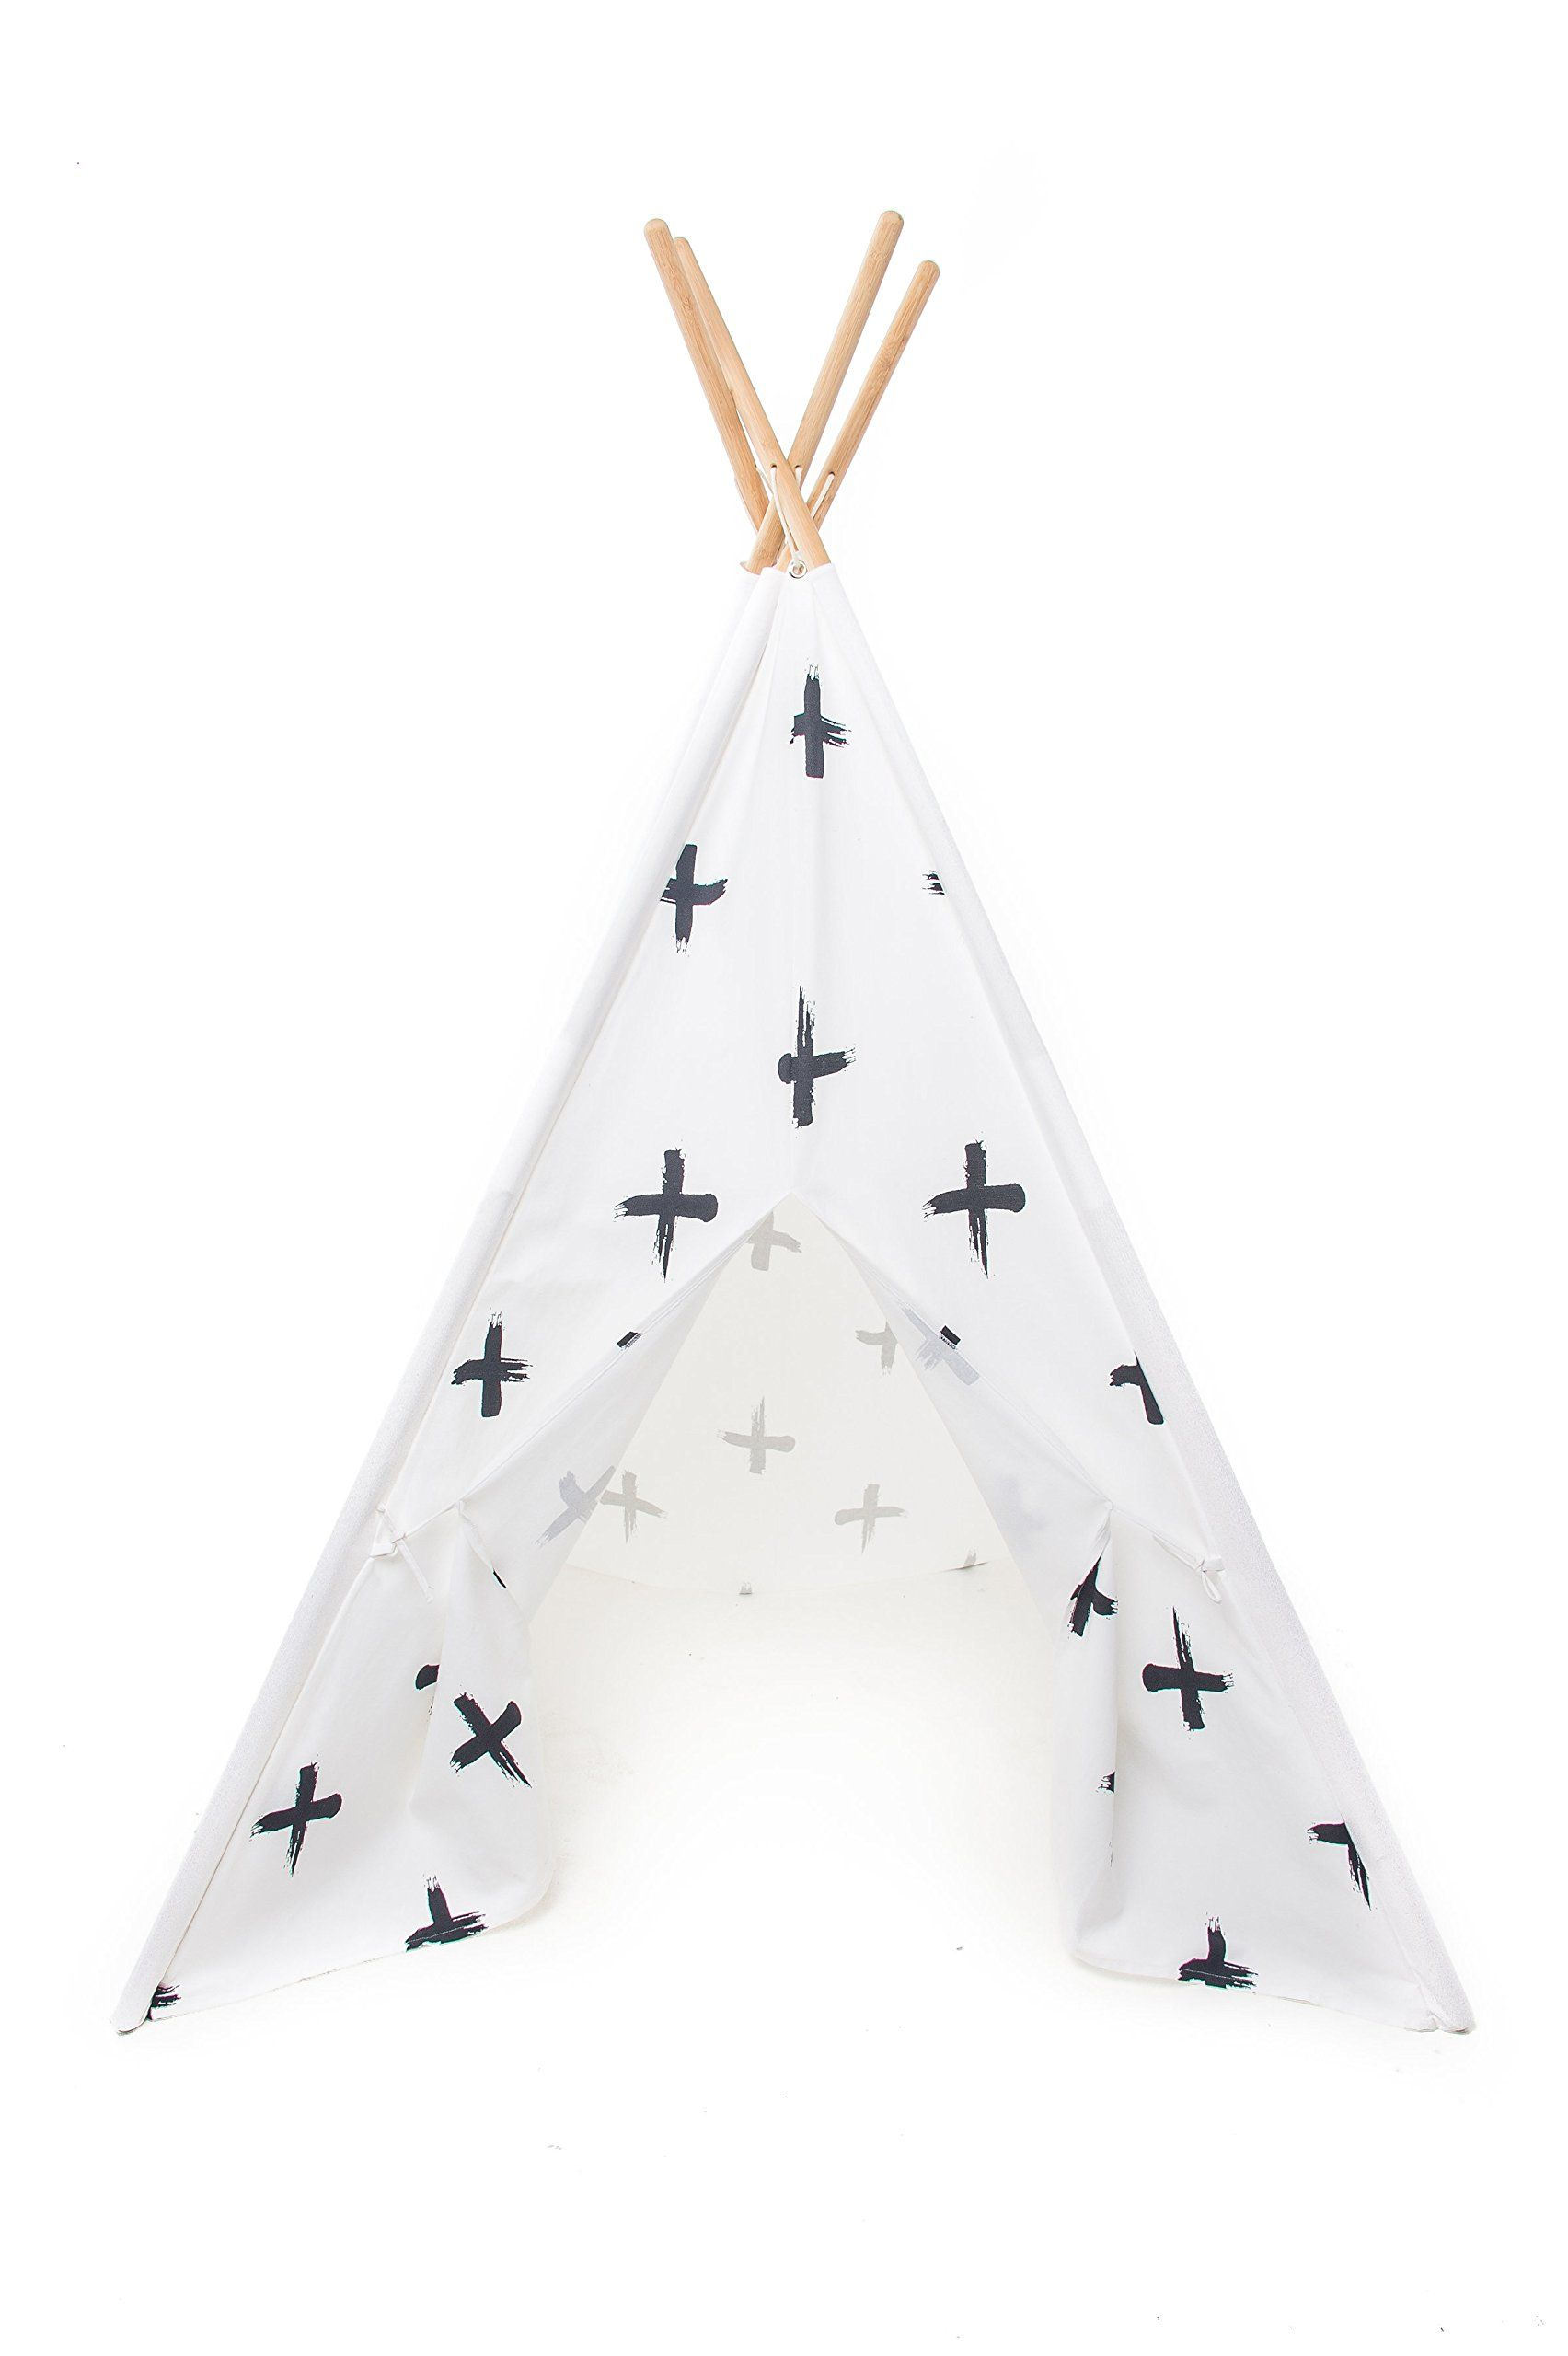 Play Teepee For Kids 100% Cotton Canvas And Bamboo Poles